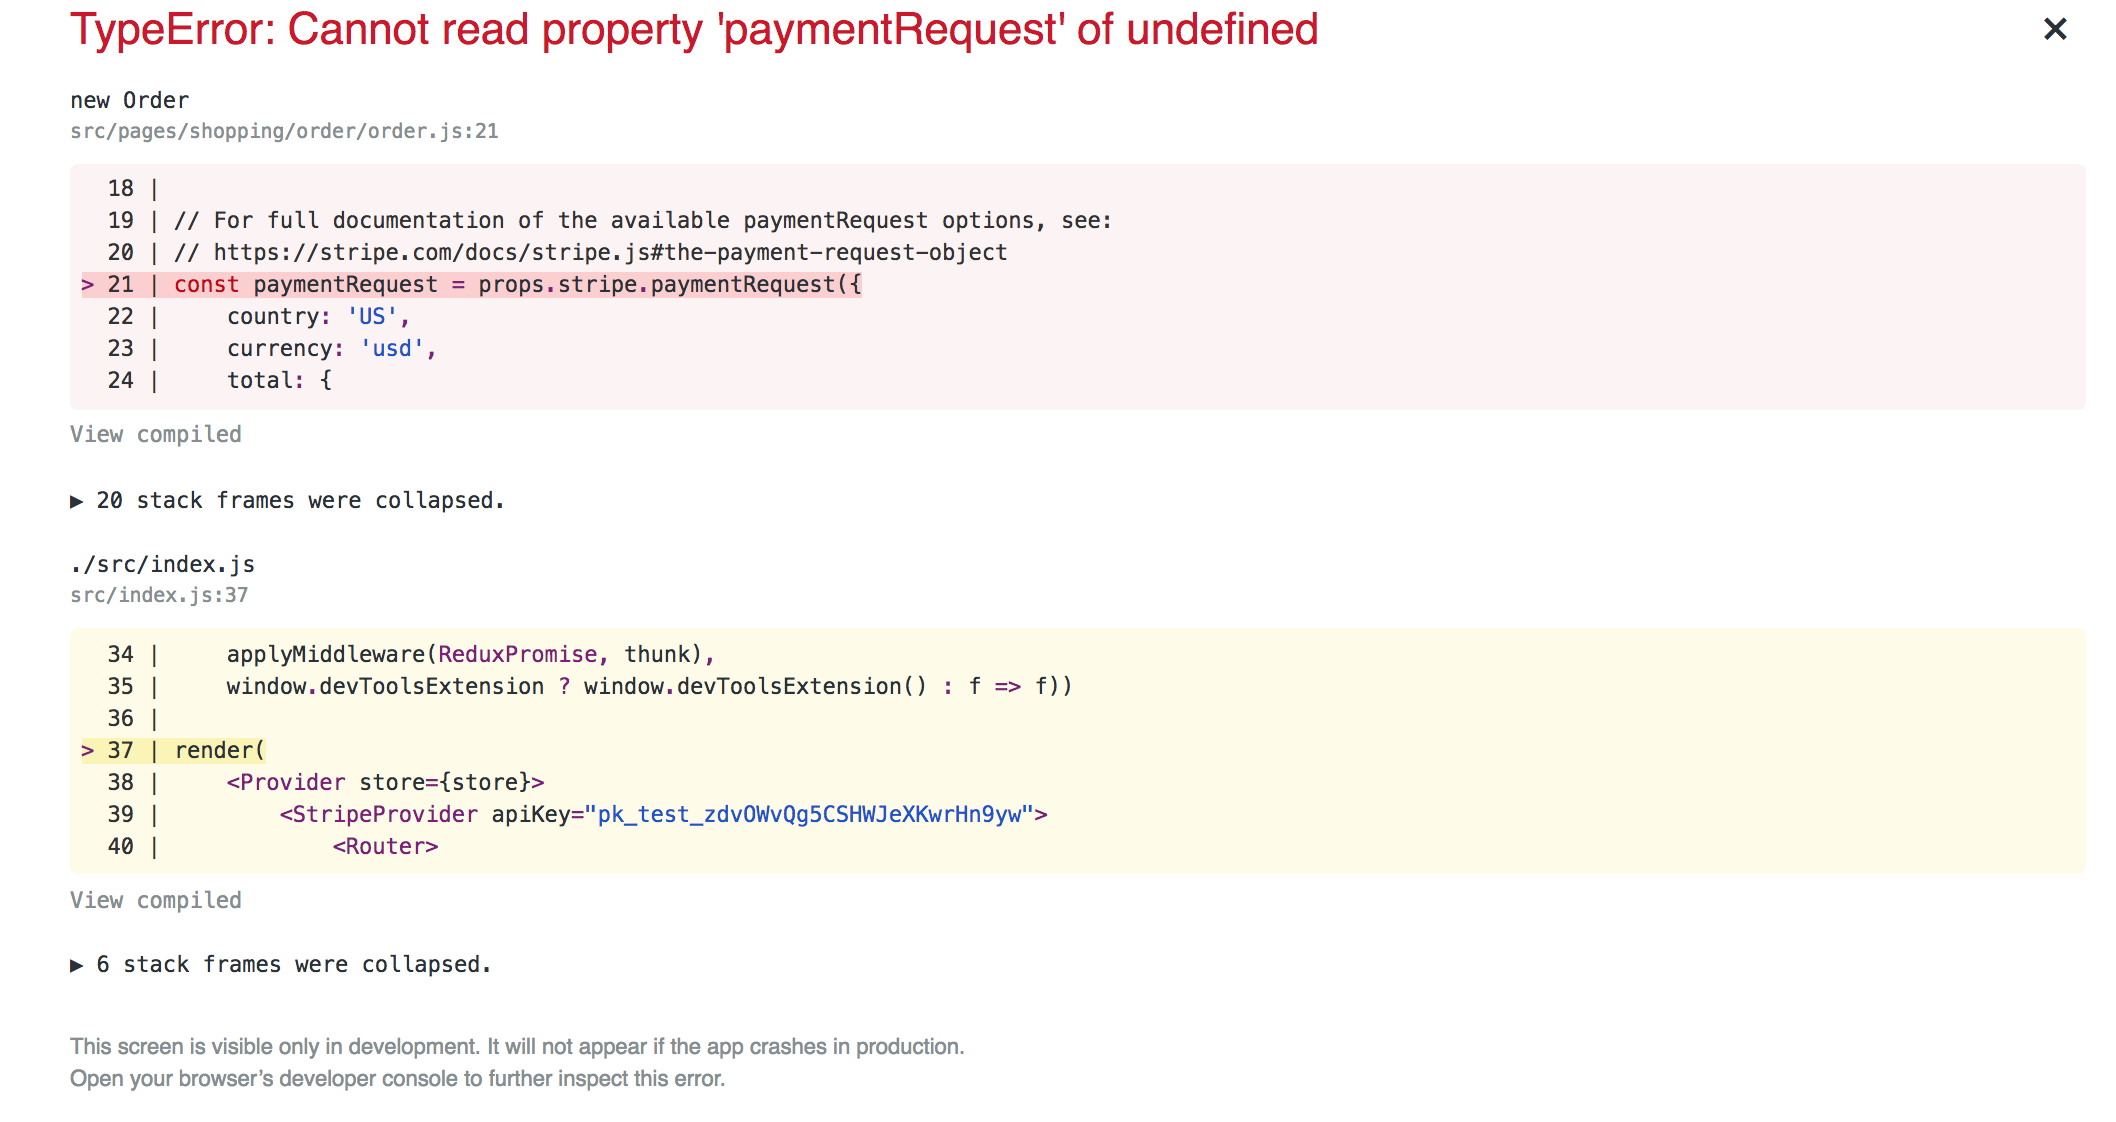 TypeError: Cannot read property 'paymentRequest' of undefined